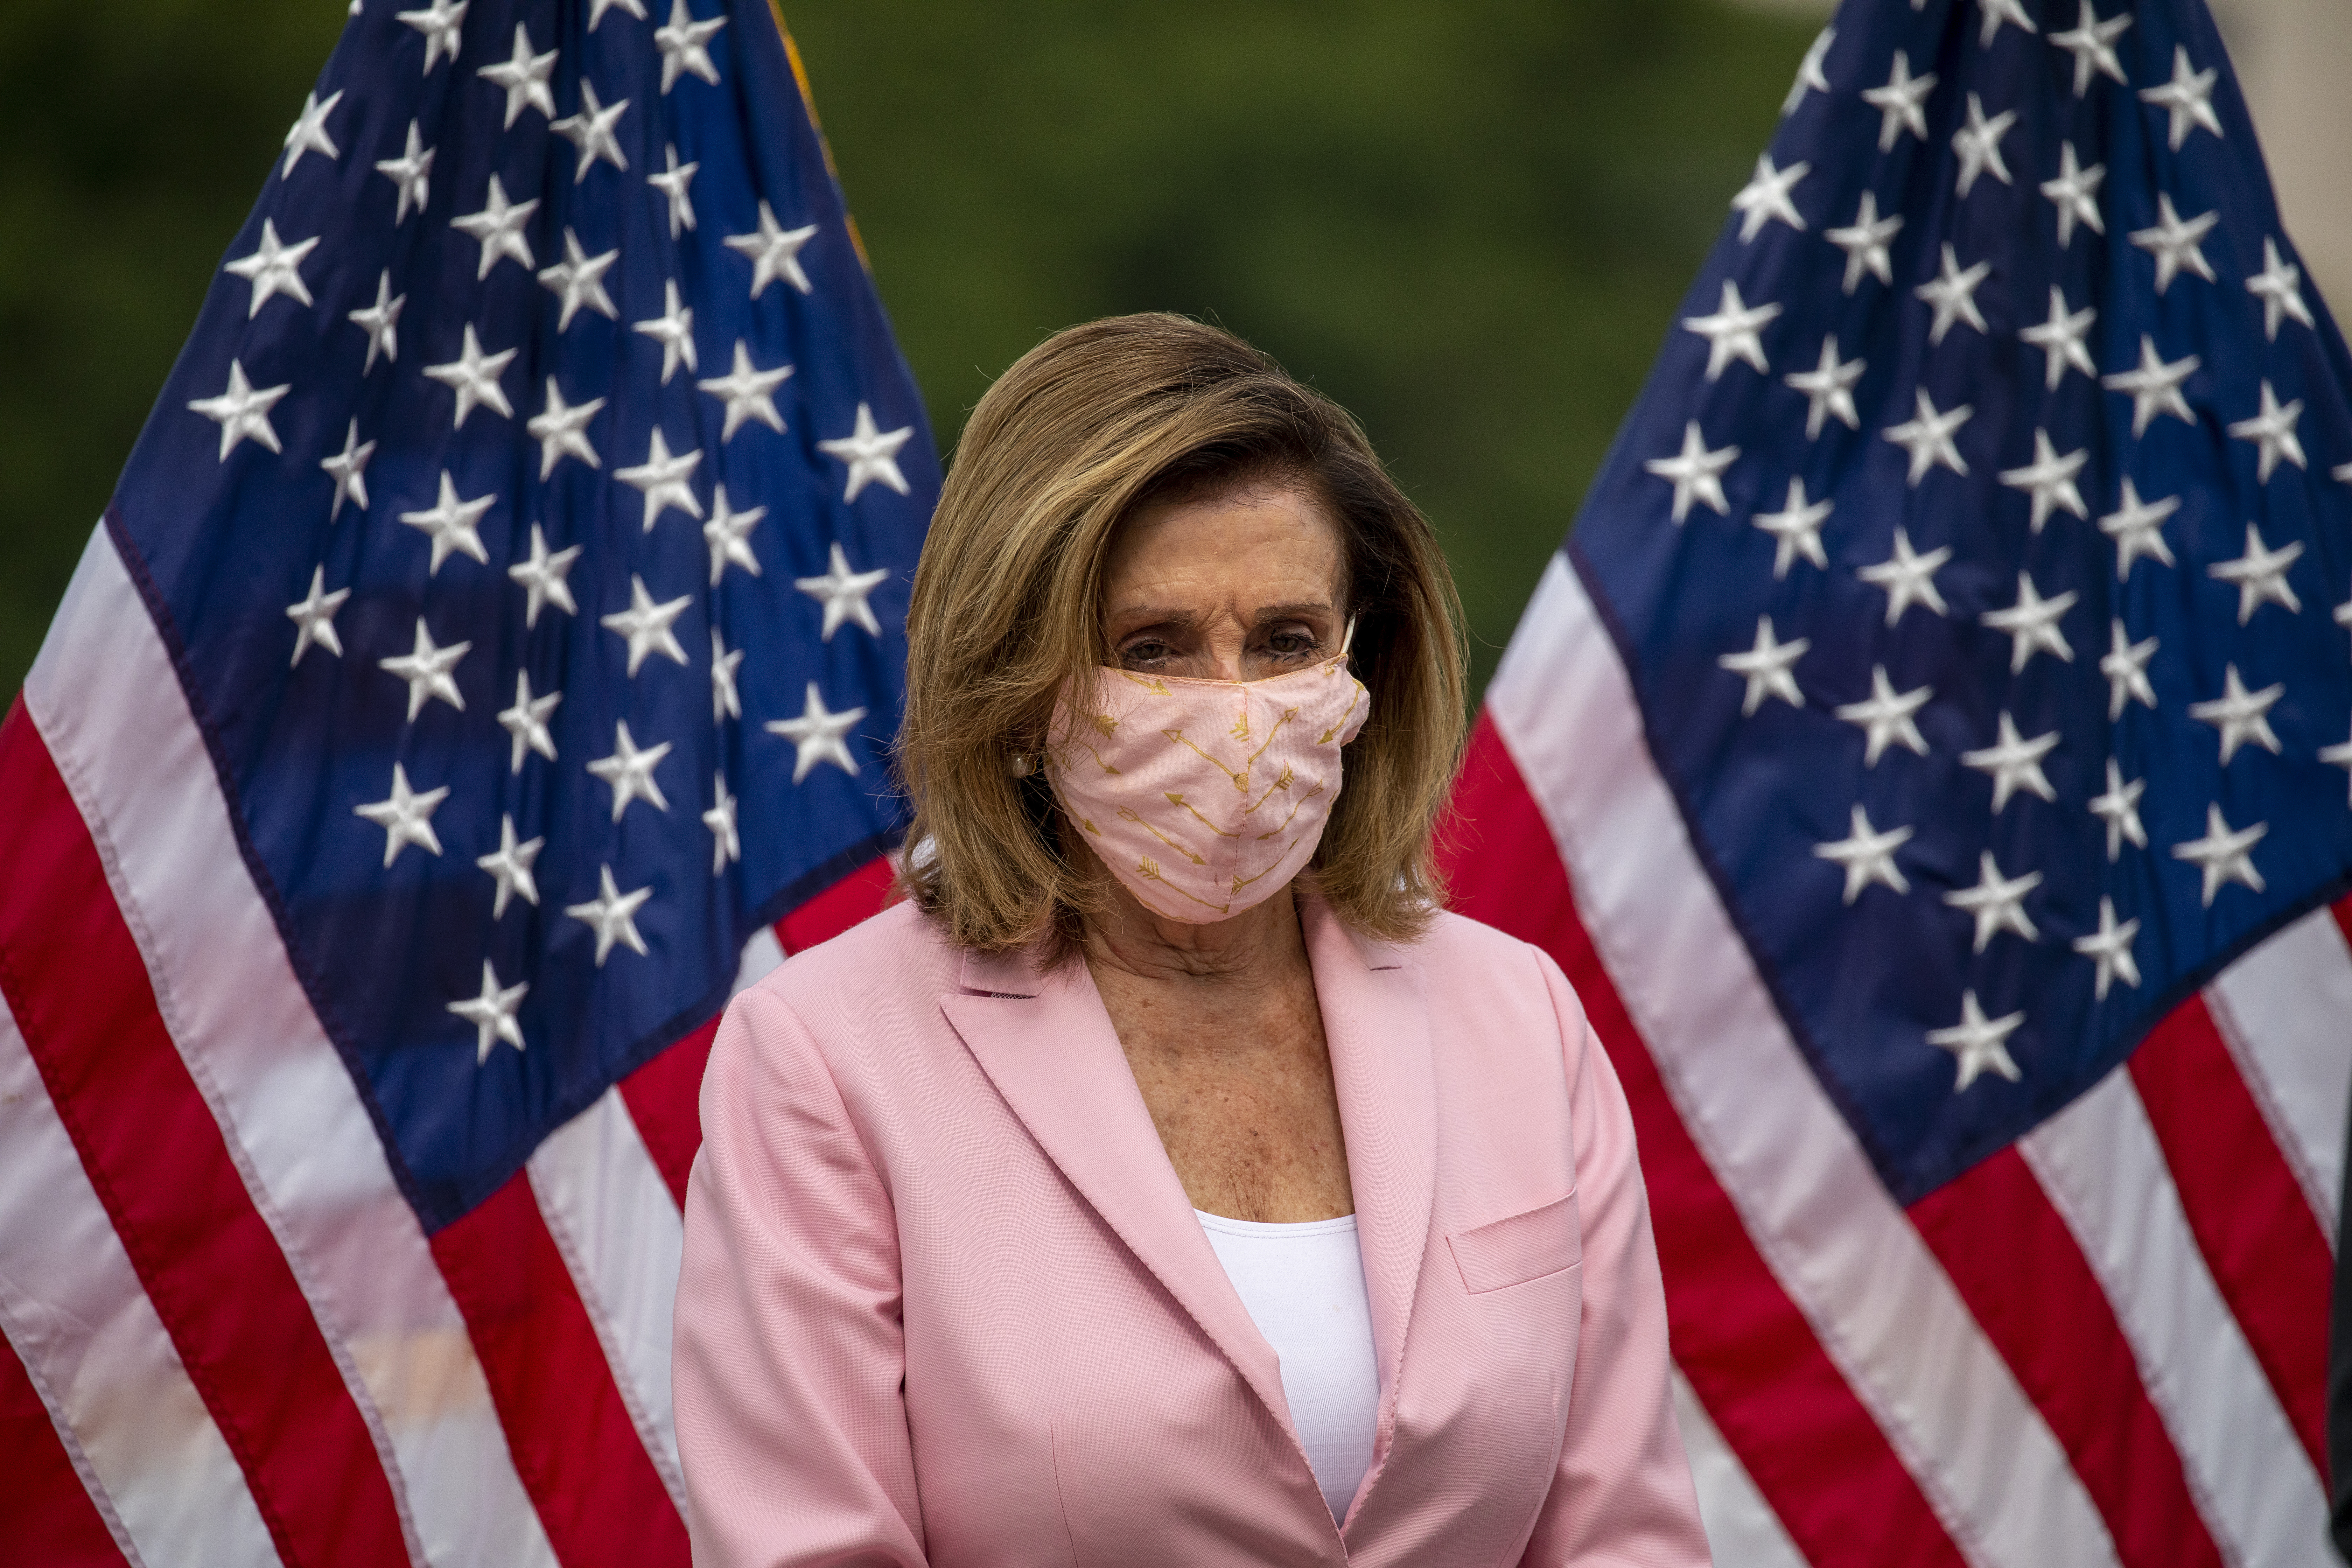 Pelosi Requires Masks To Be Worn In House Chamber After Member Tests Positive For Covid 19 Ktla